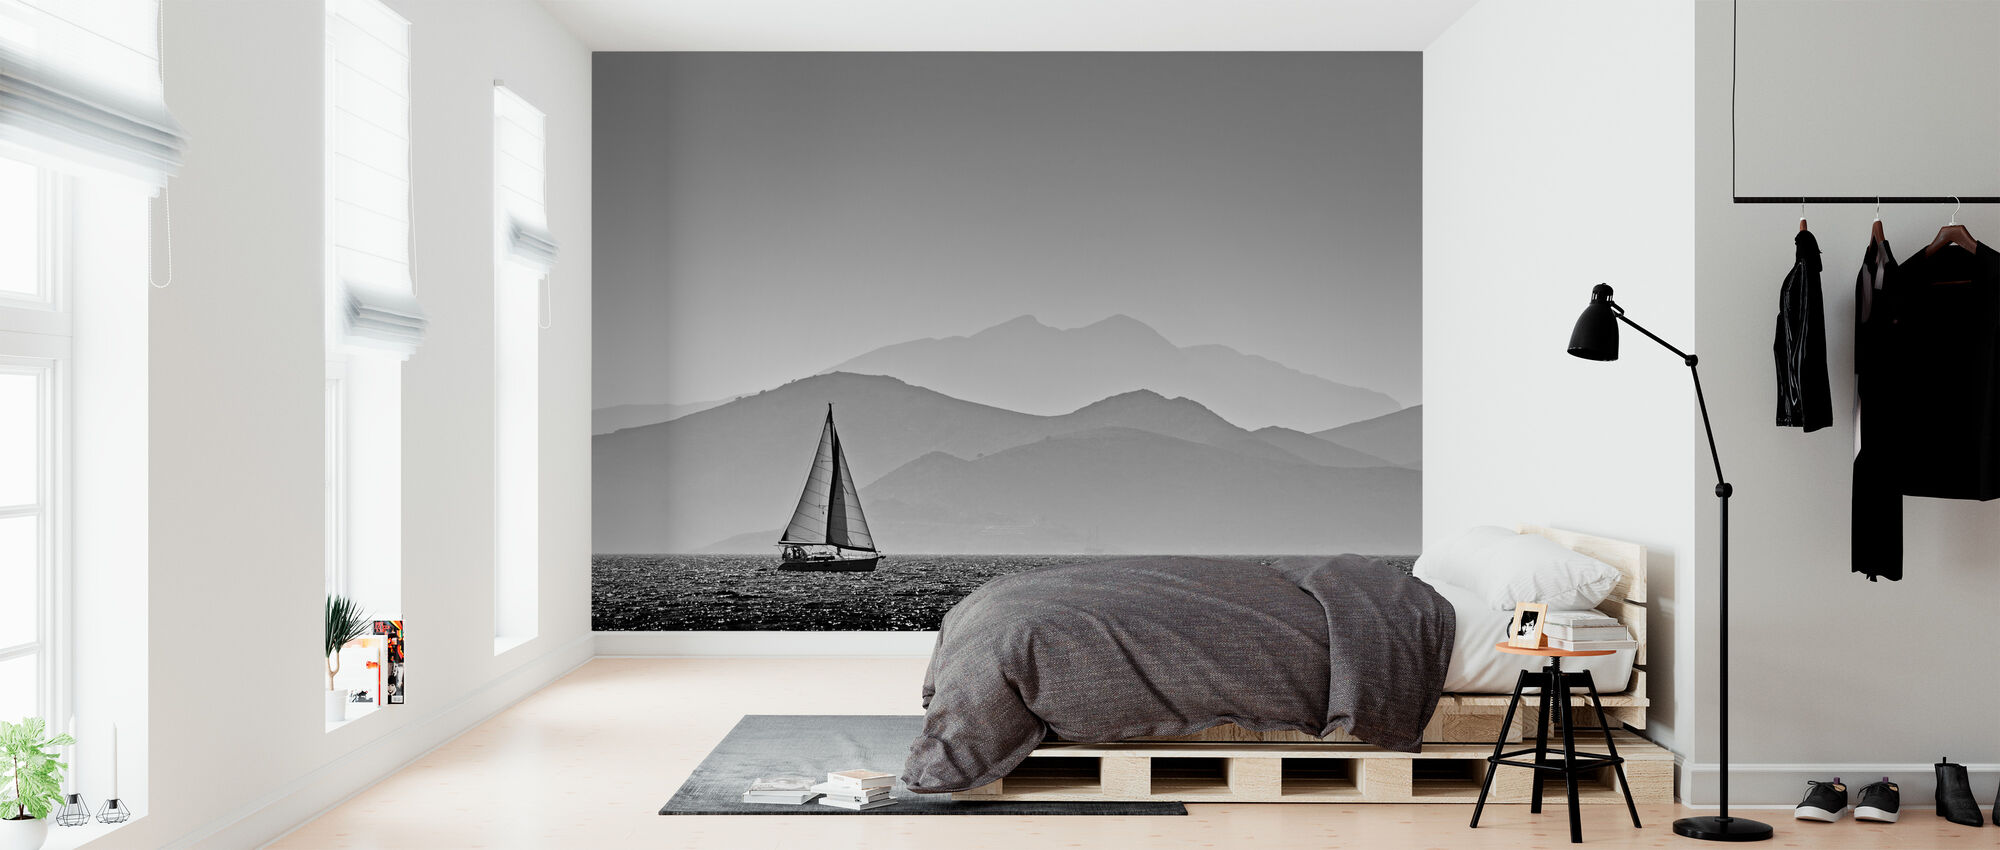 Sailing - Wallpaper - Bedroom